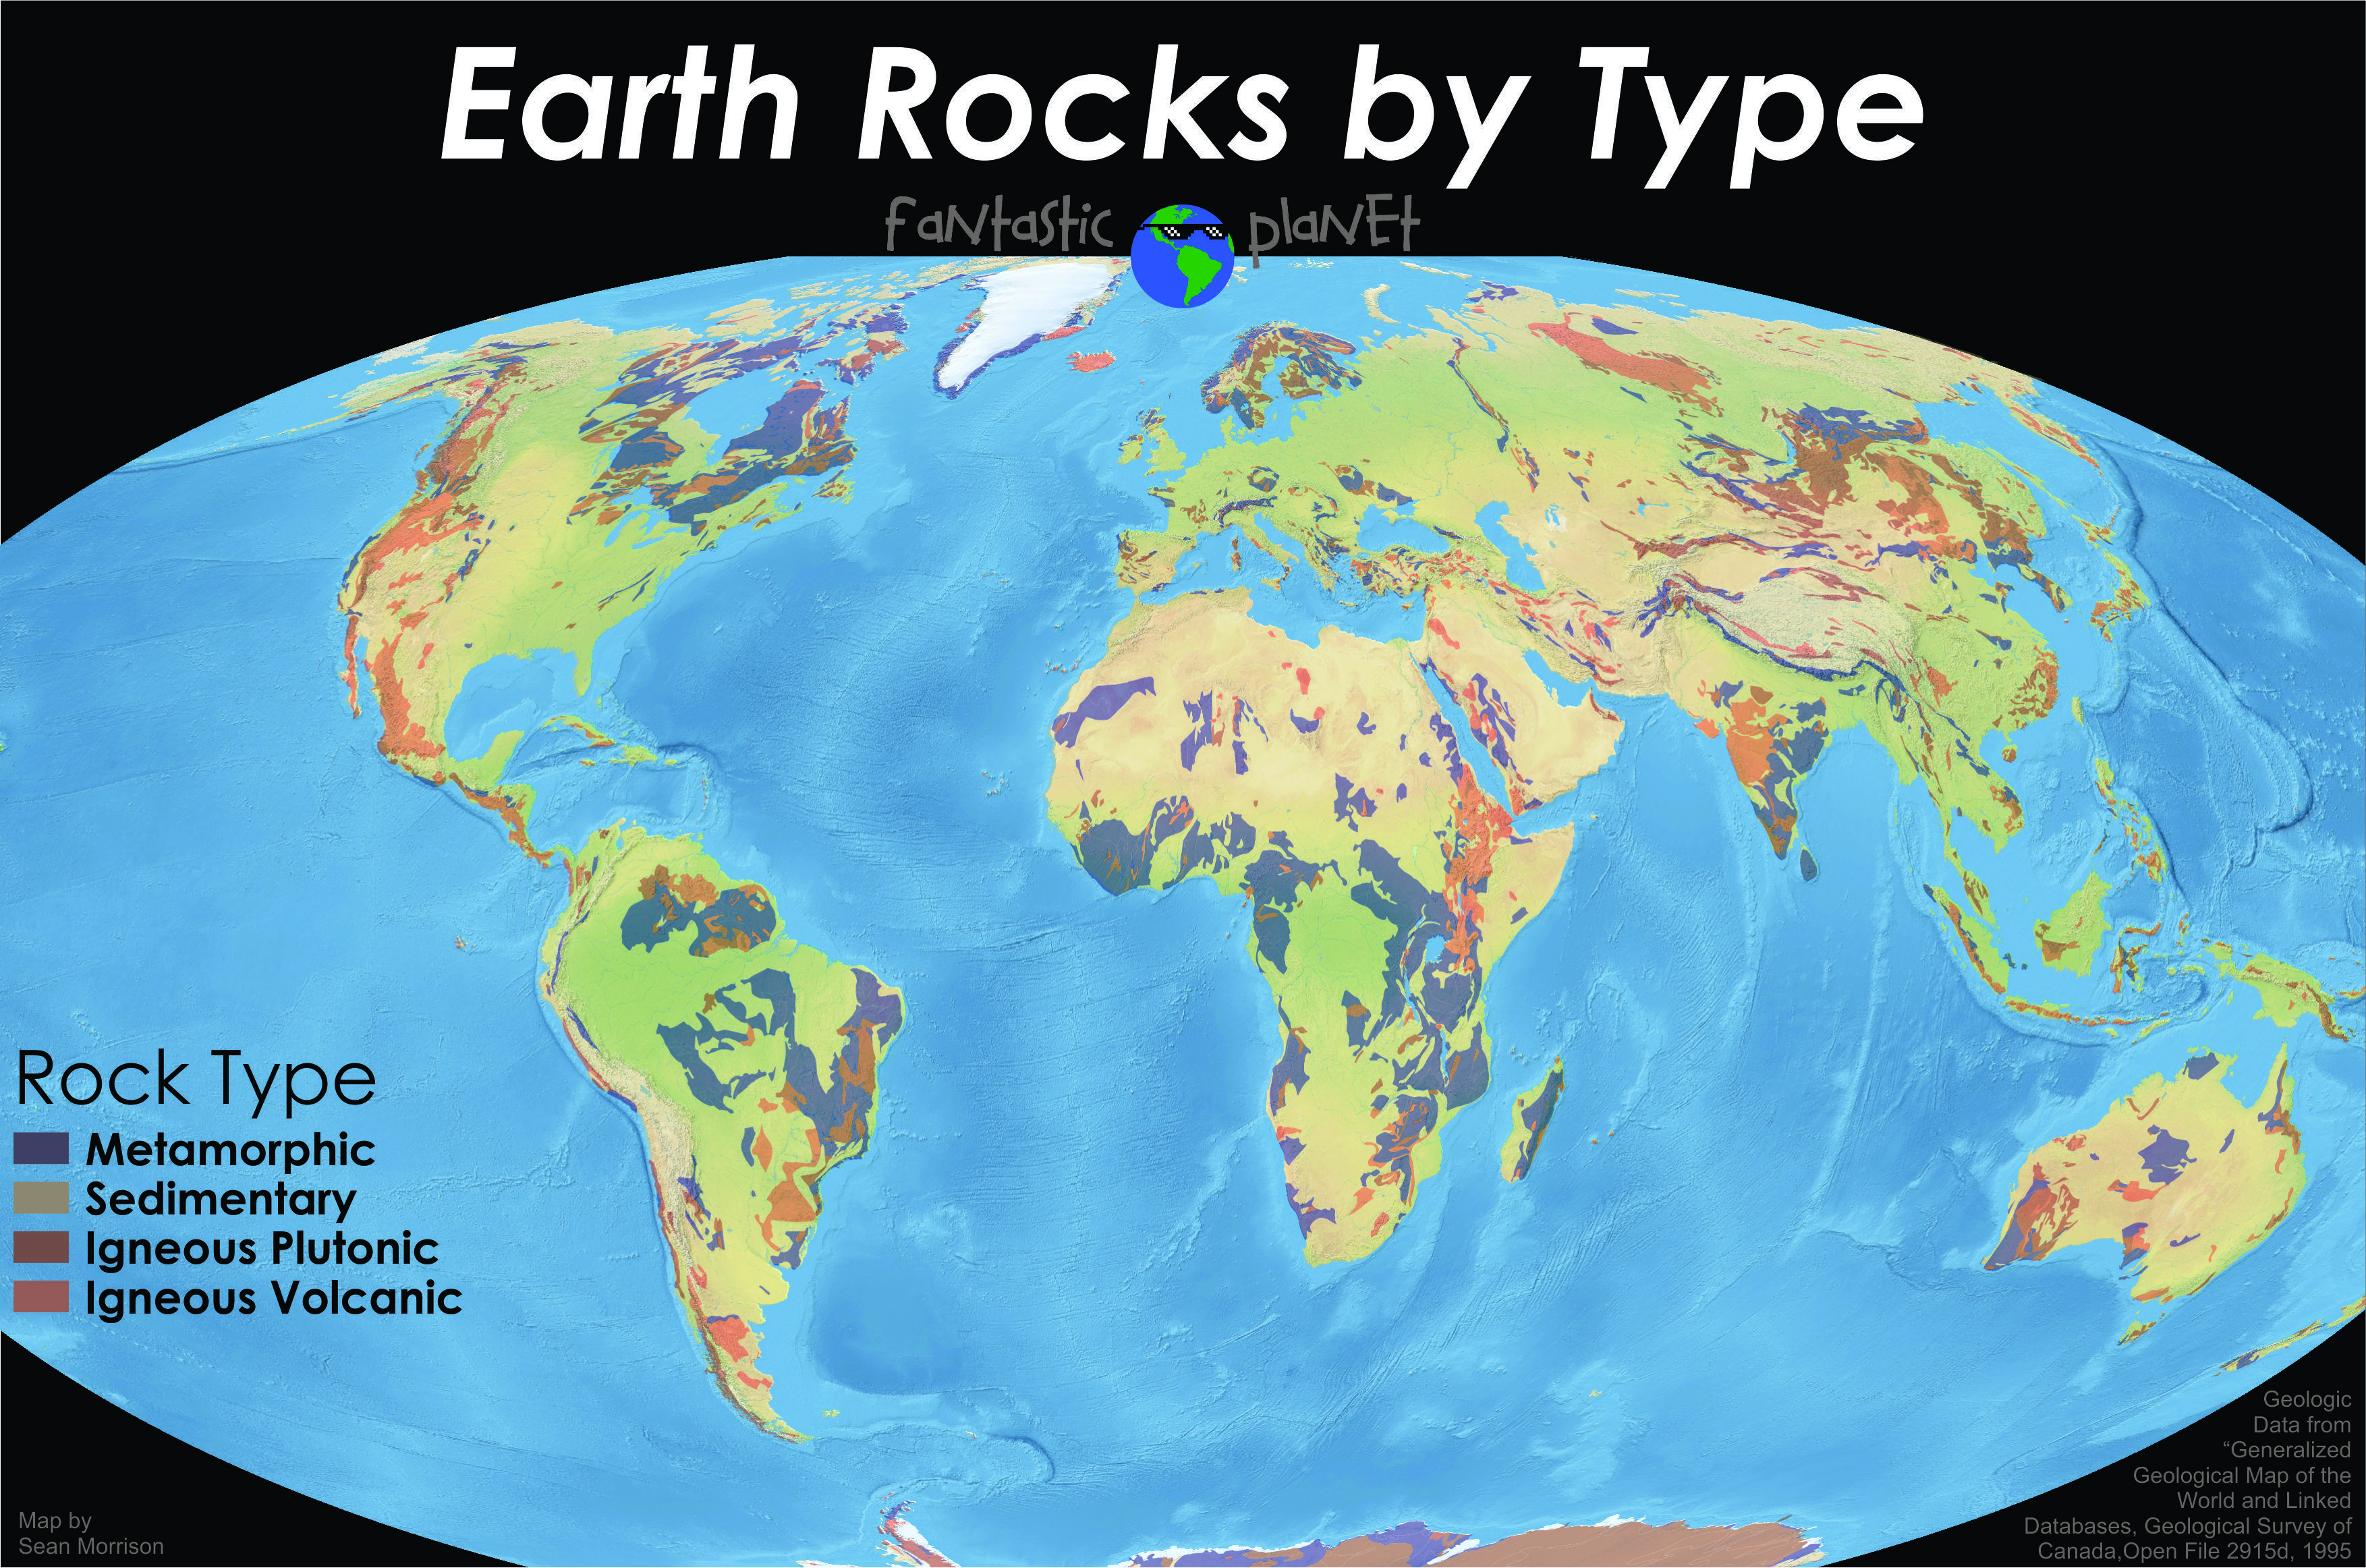 Simplified Geologic World Map Showing Different Rock Types